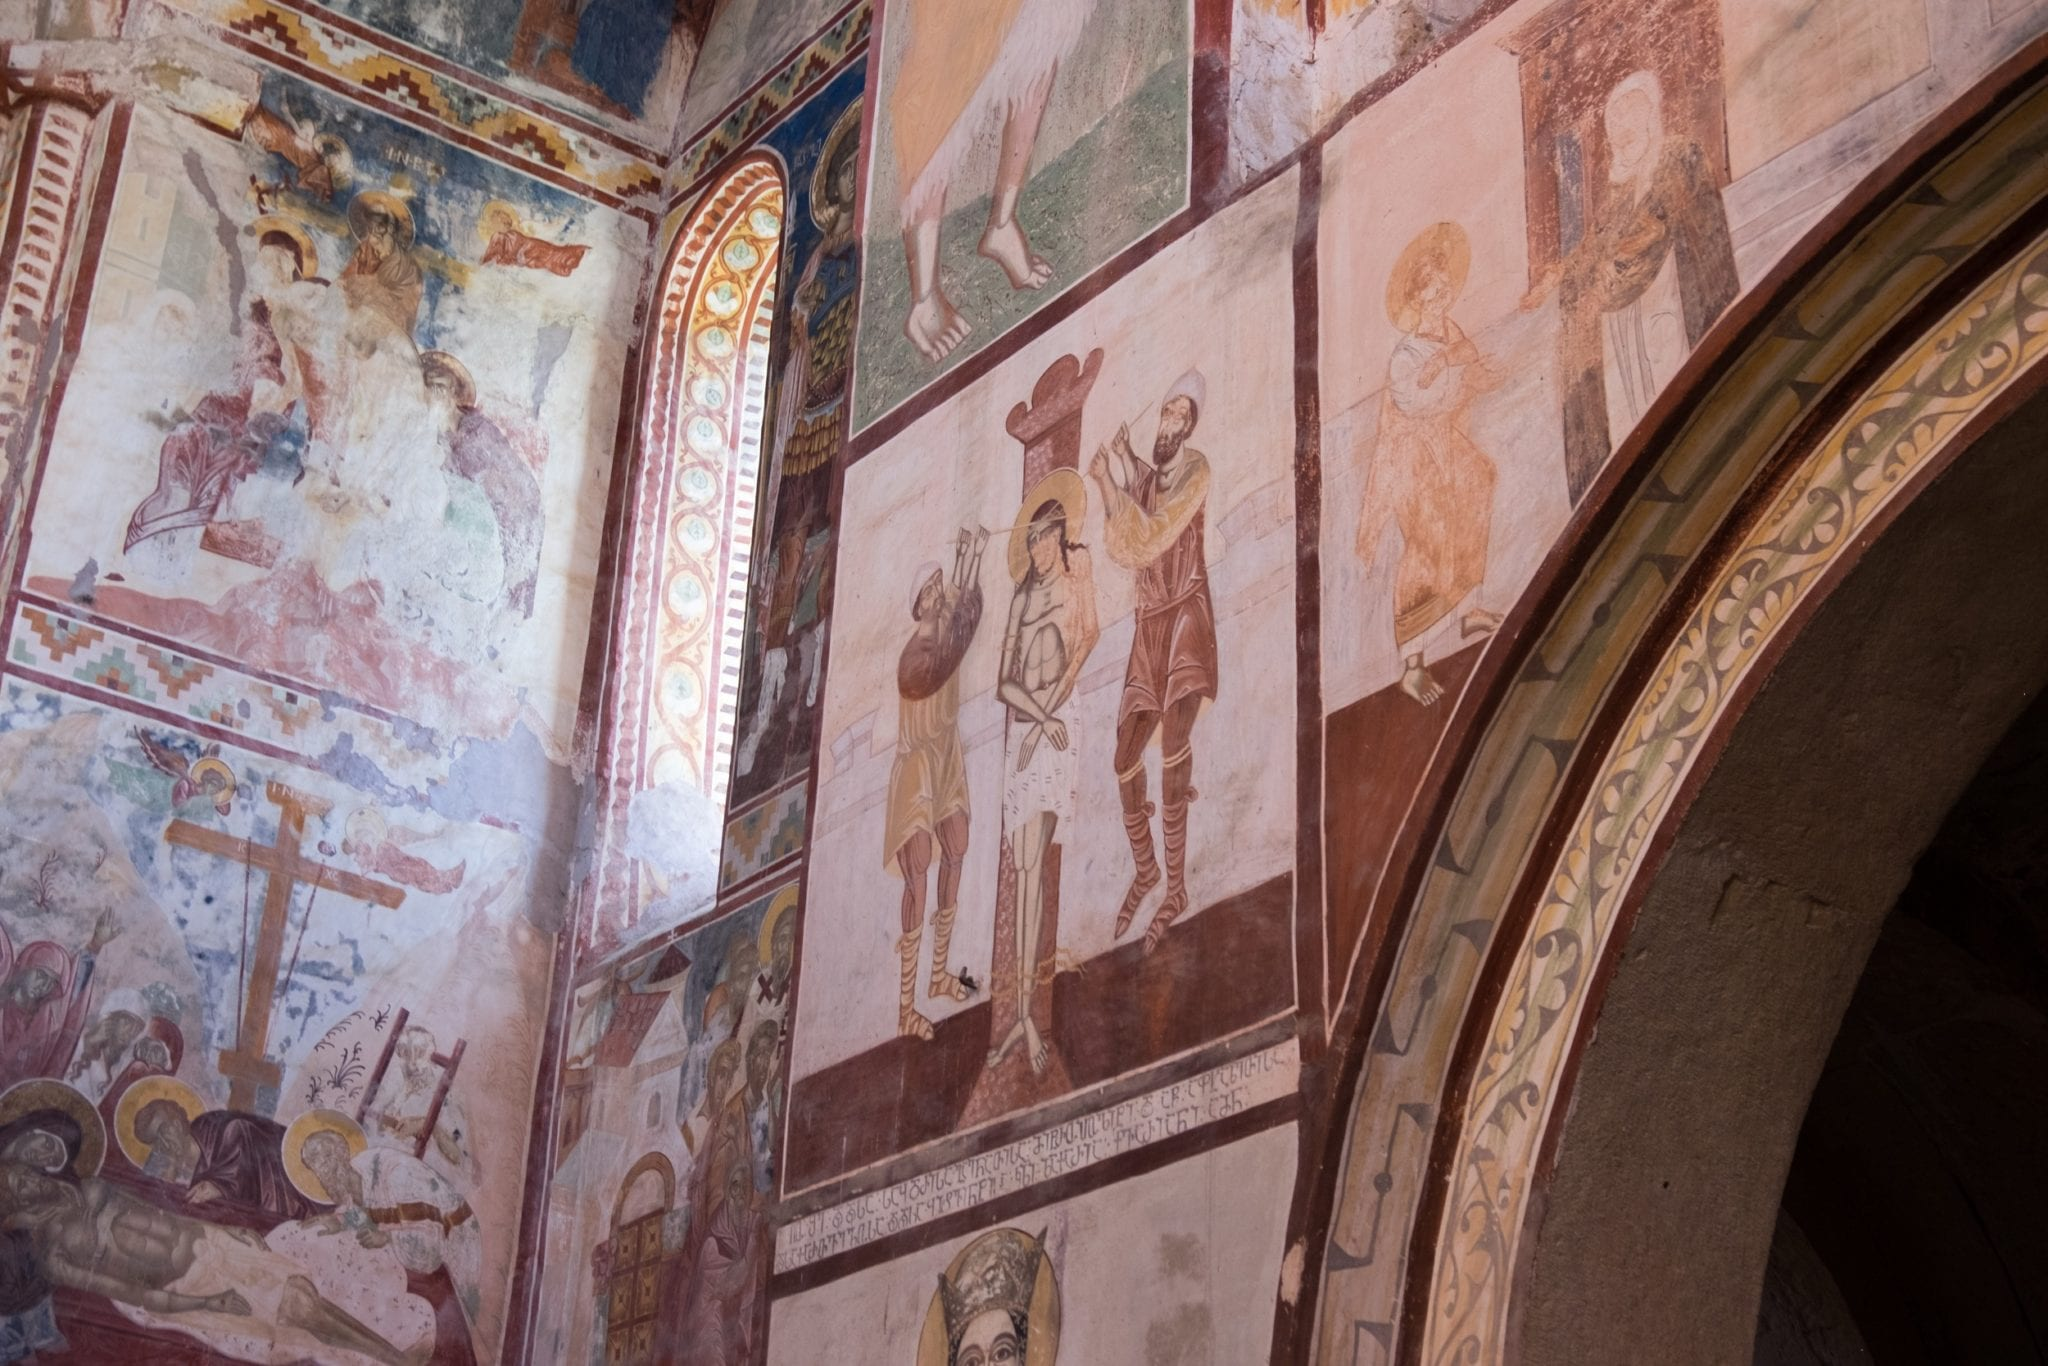 Interior of Gelati Monastery with earth-colored frescoes of sacred scenes in the Bible painted on the walls.